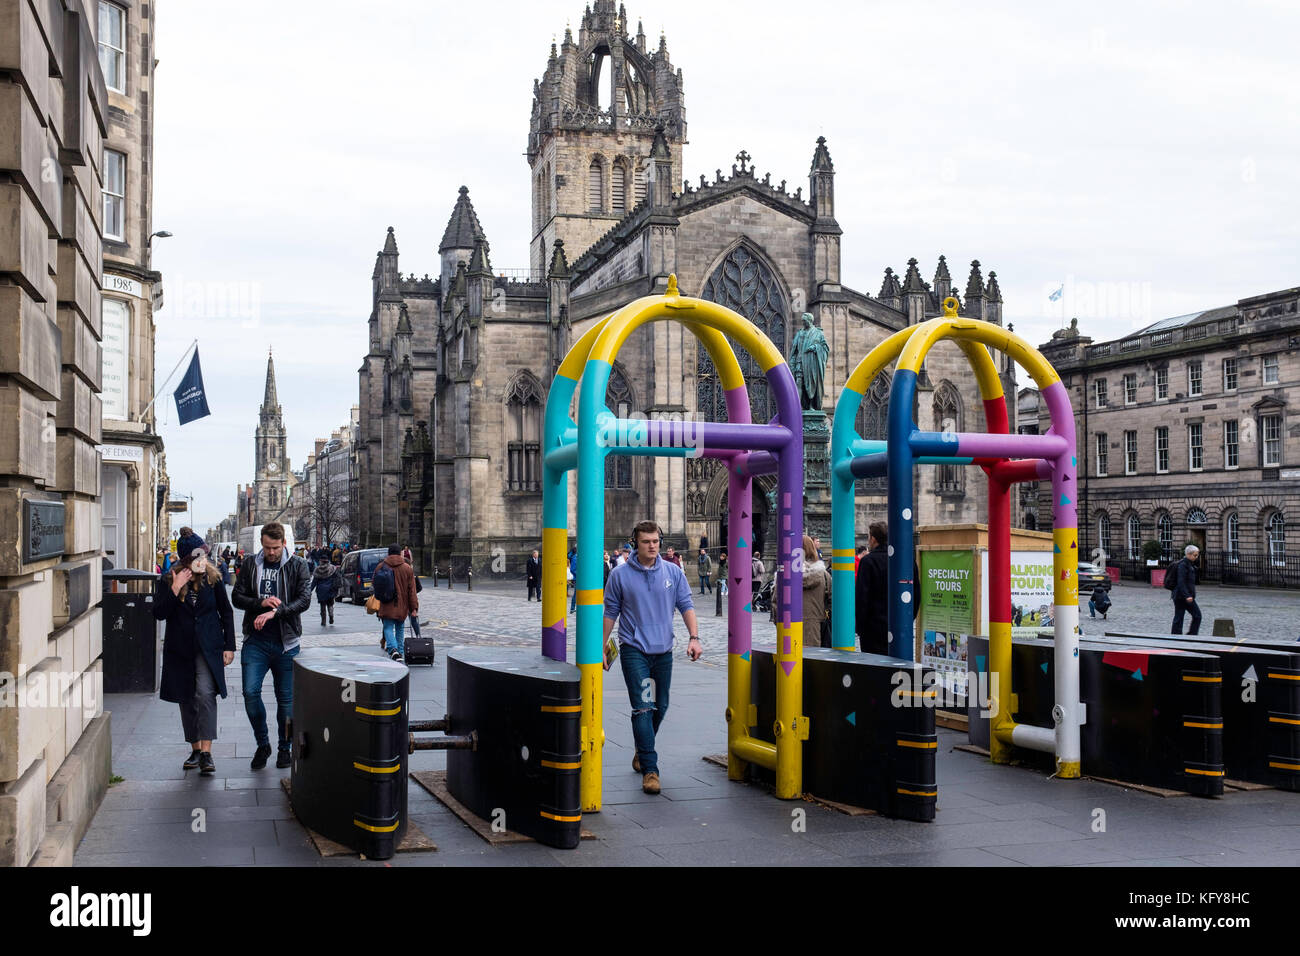 View of new anti-terrorist vehicle barriers on the Royal Mile in Edinburgh, Scotland, United Kingdom. - Stock Image